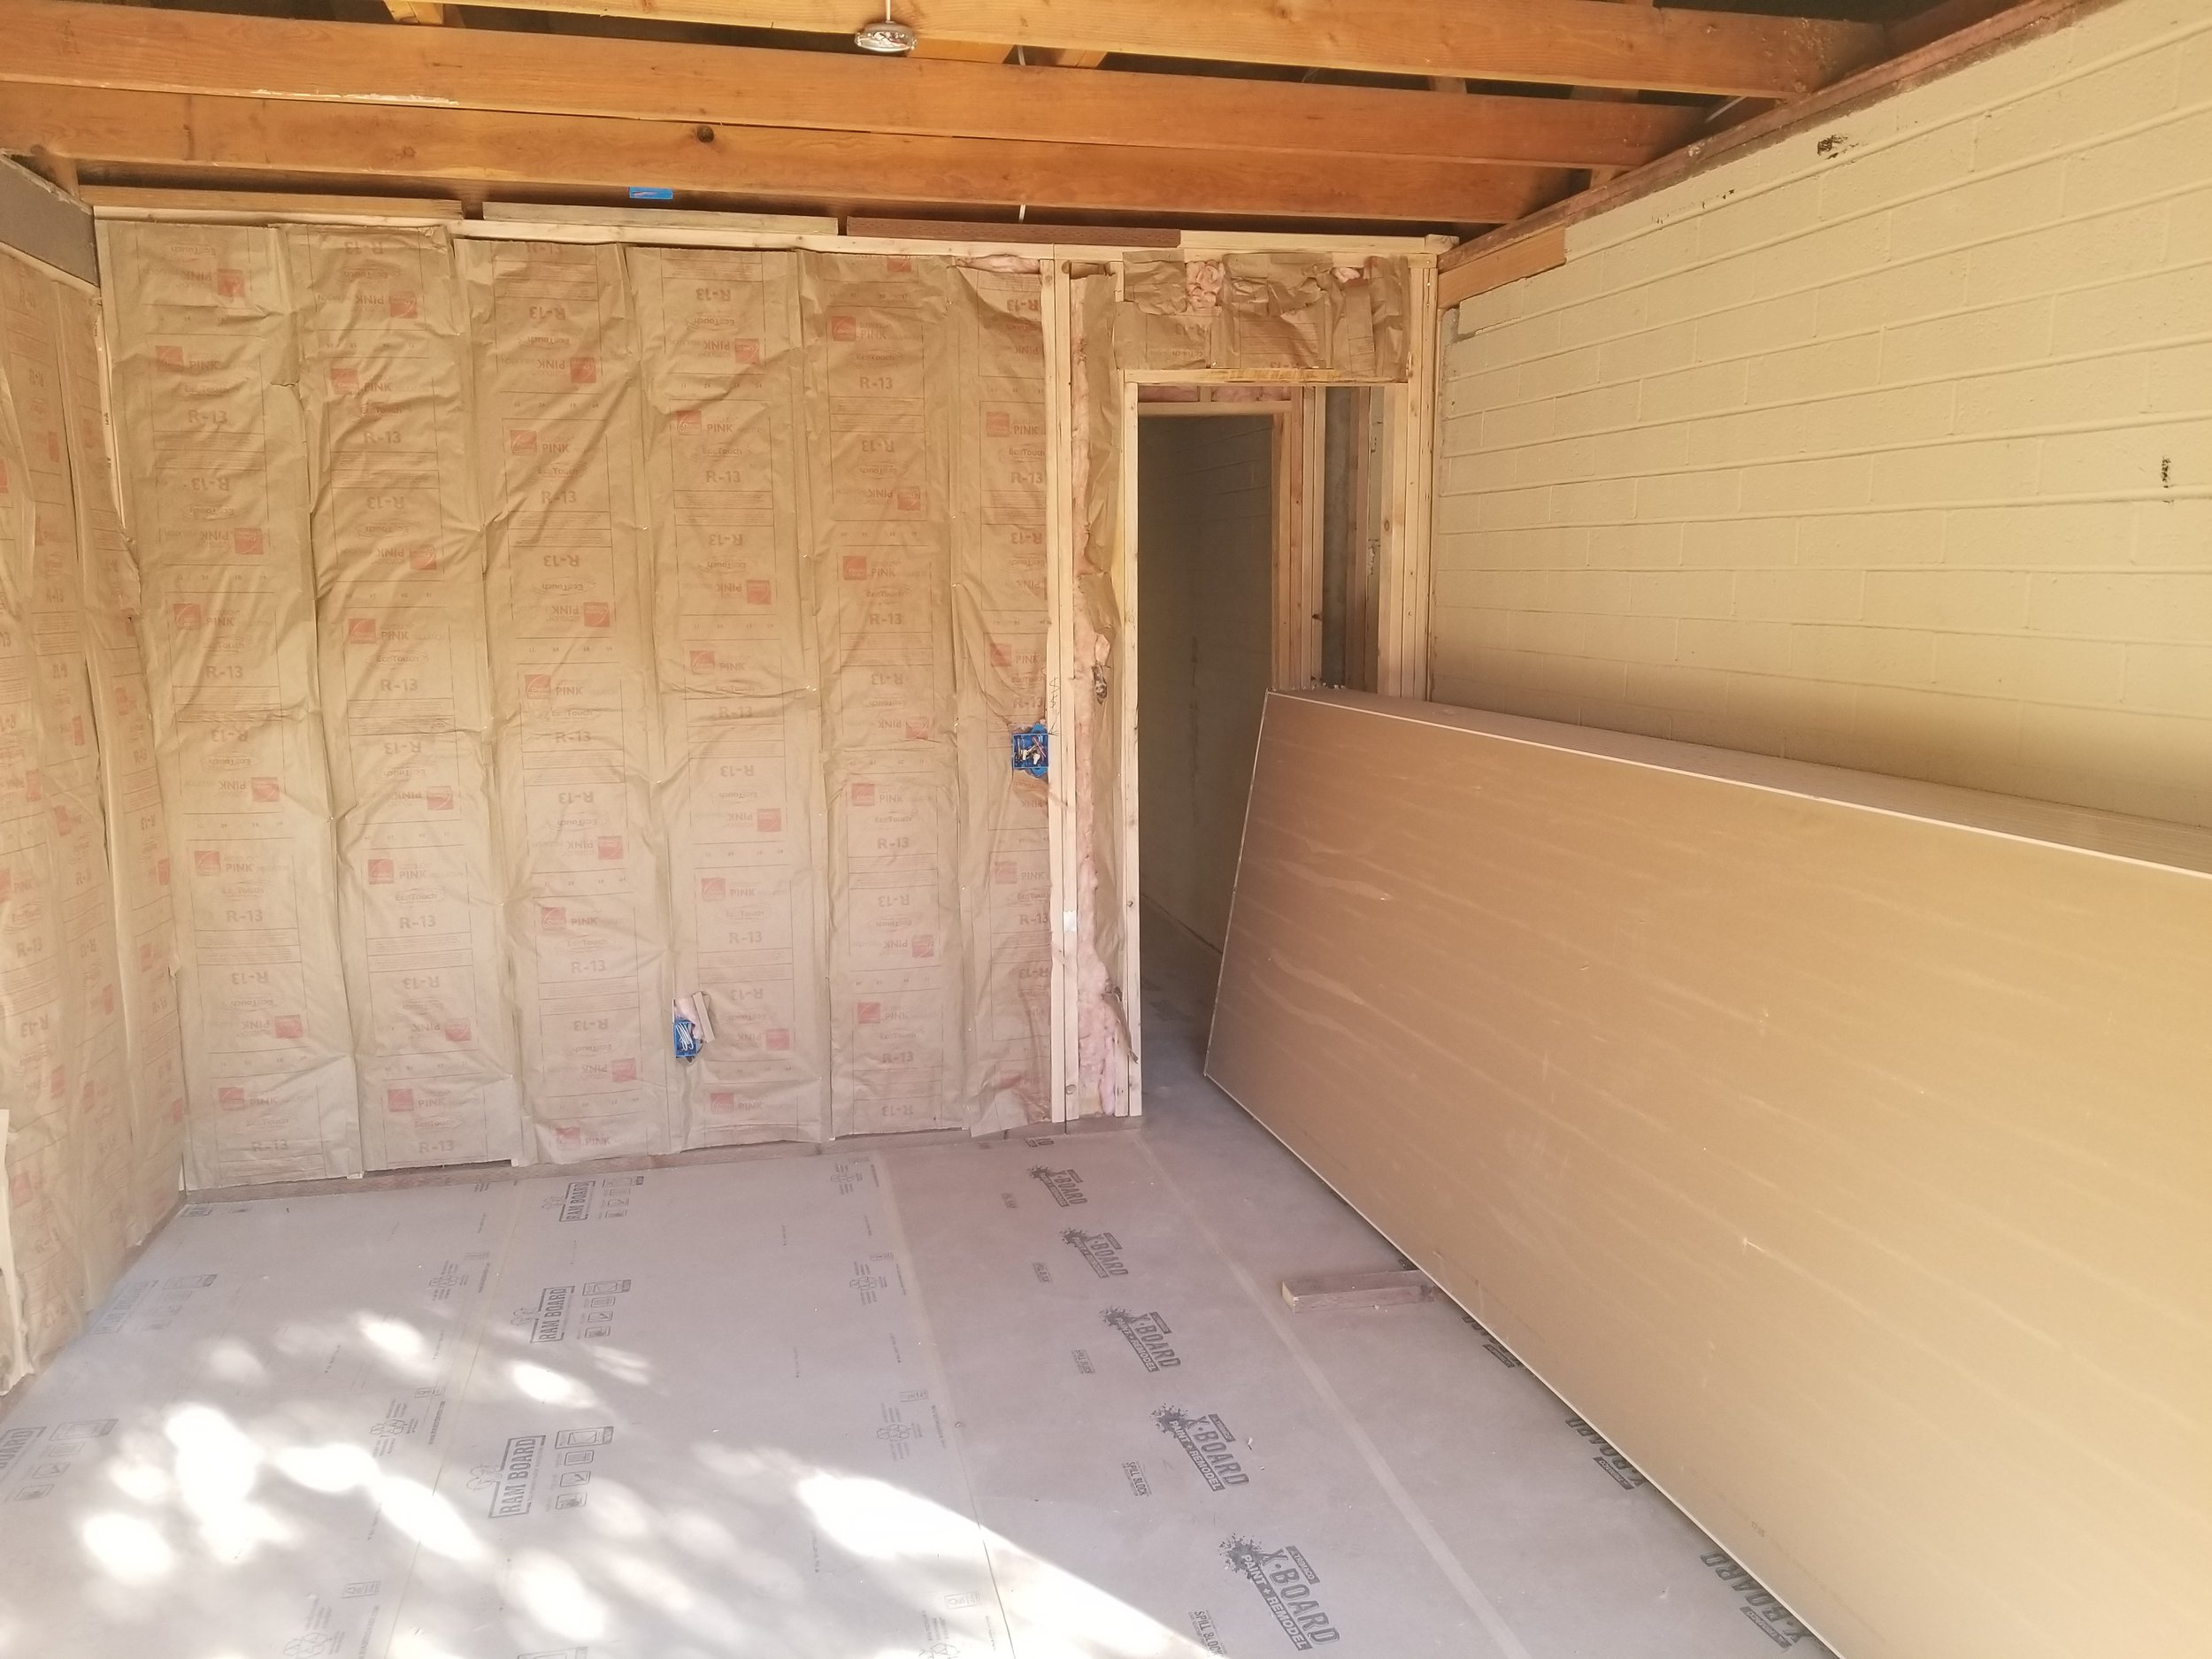 Insulation installed bedrooms 2 & 3